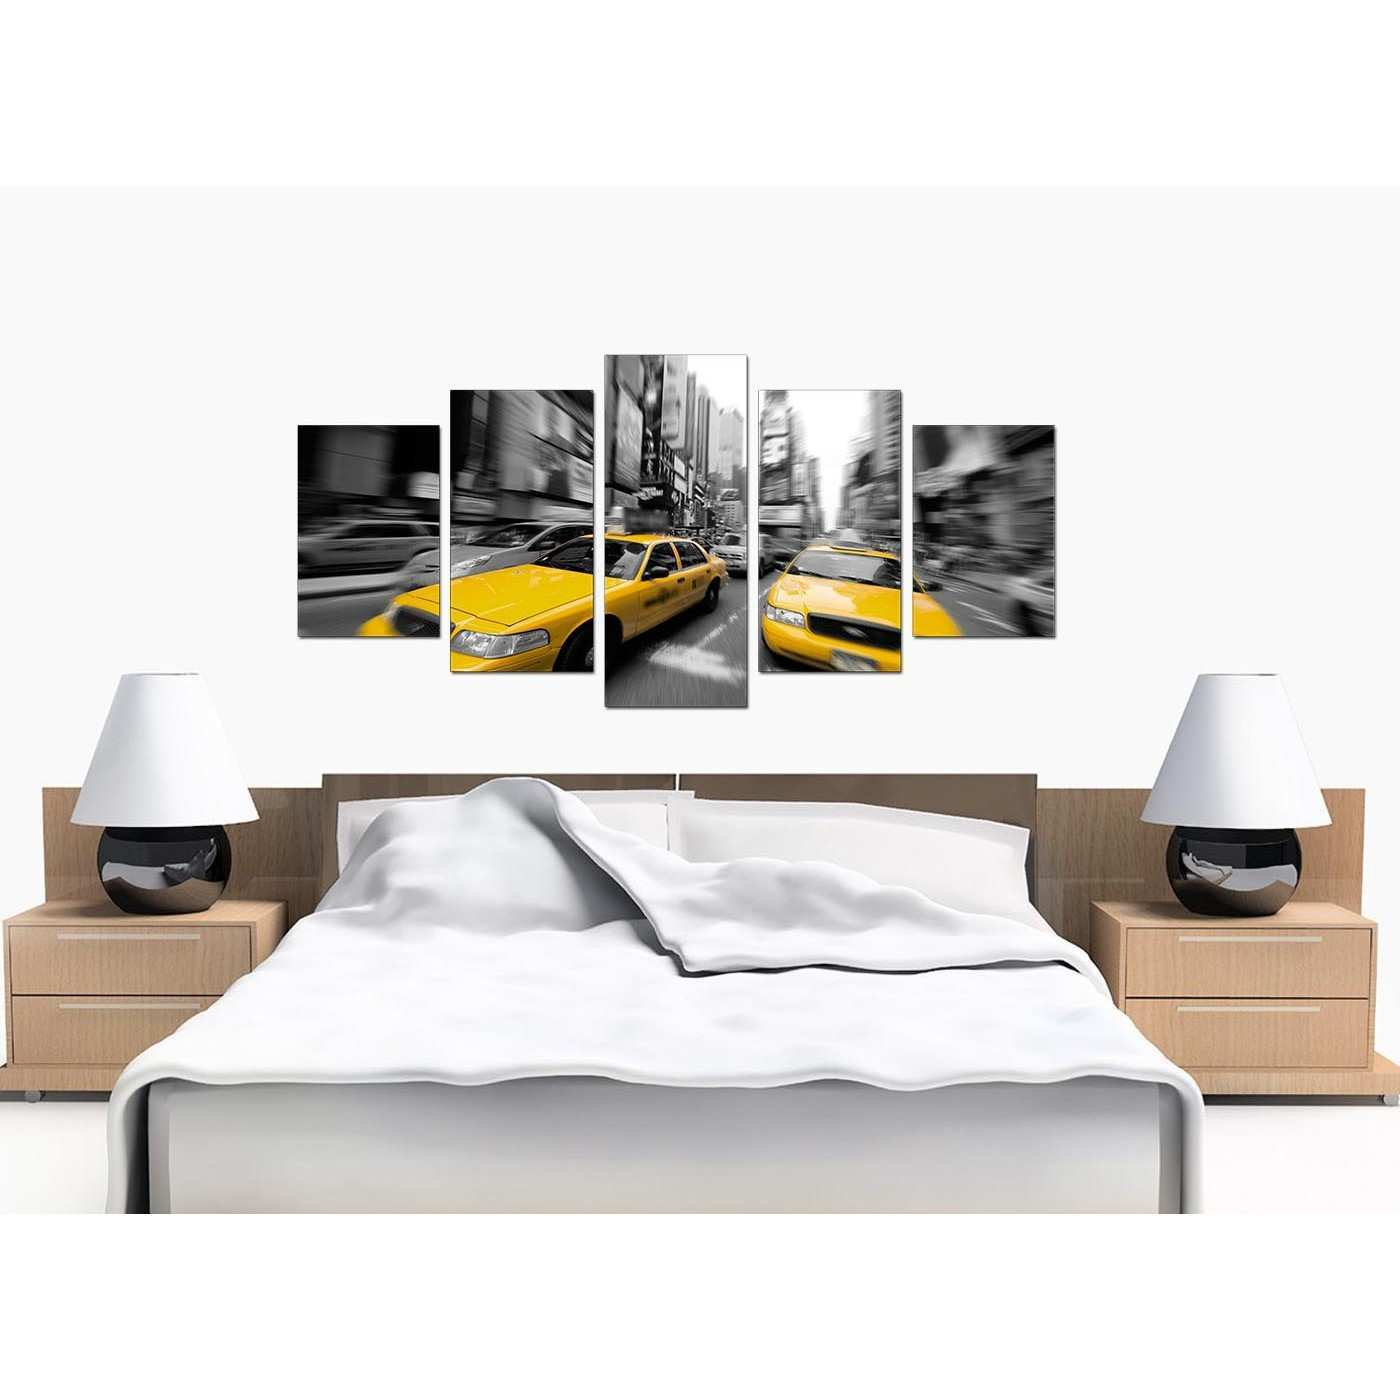 Yellow New York Taxi Canvas Prints Set of 5 in Black & White